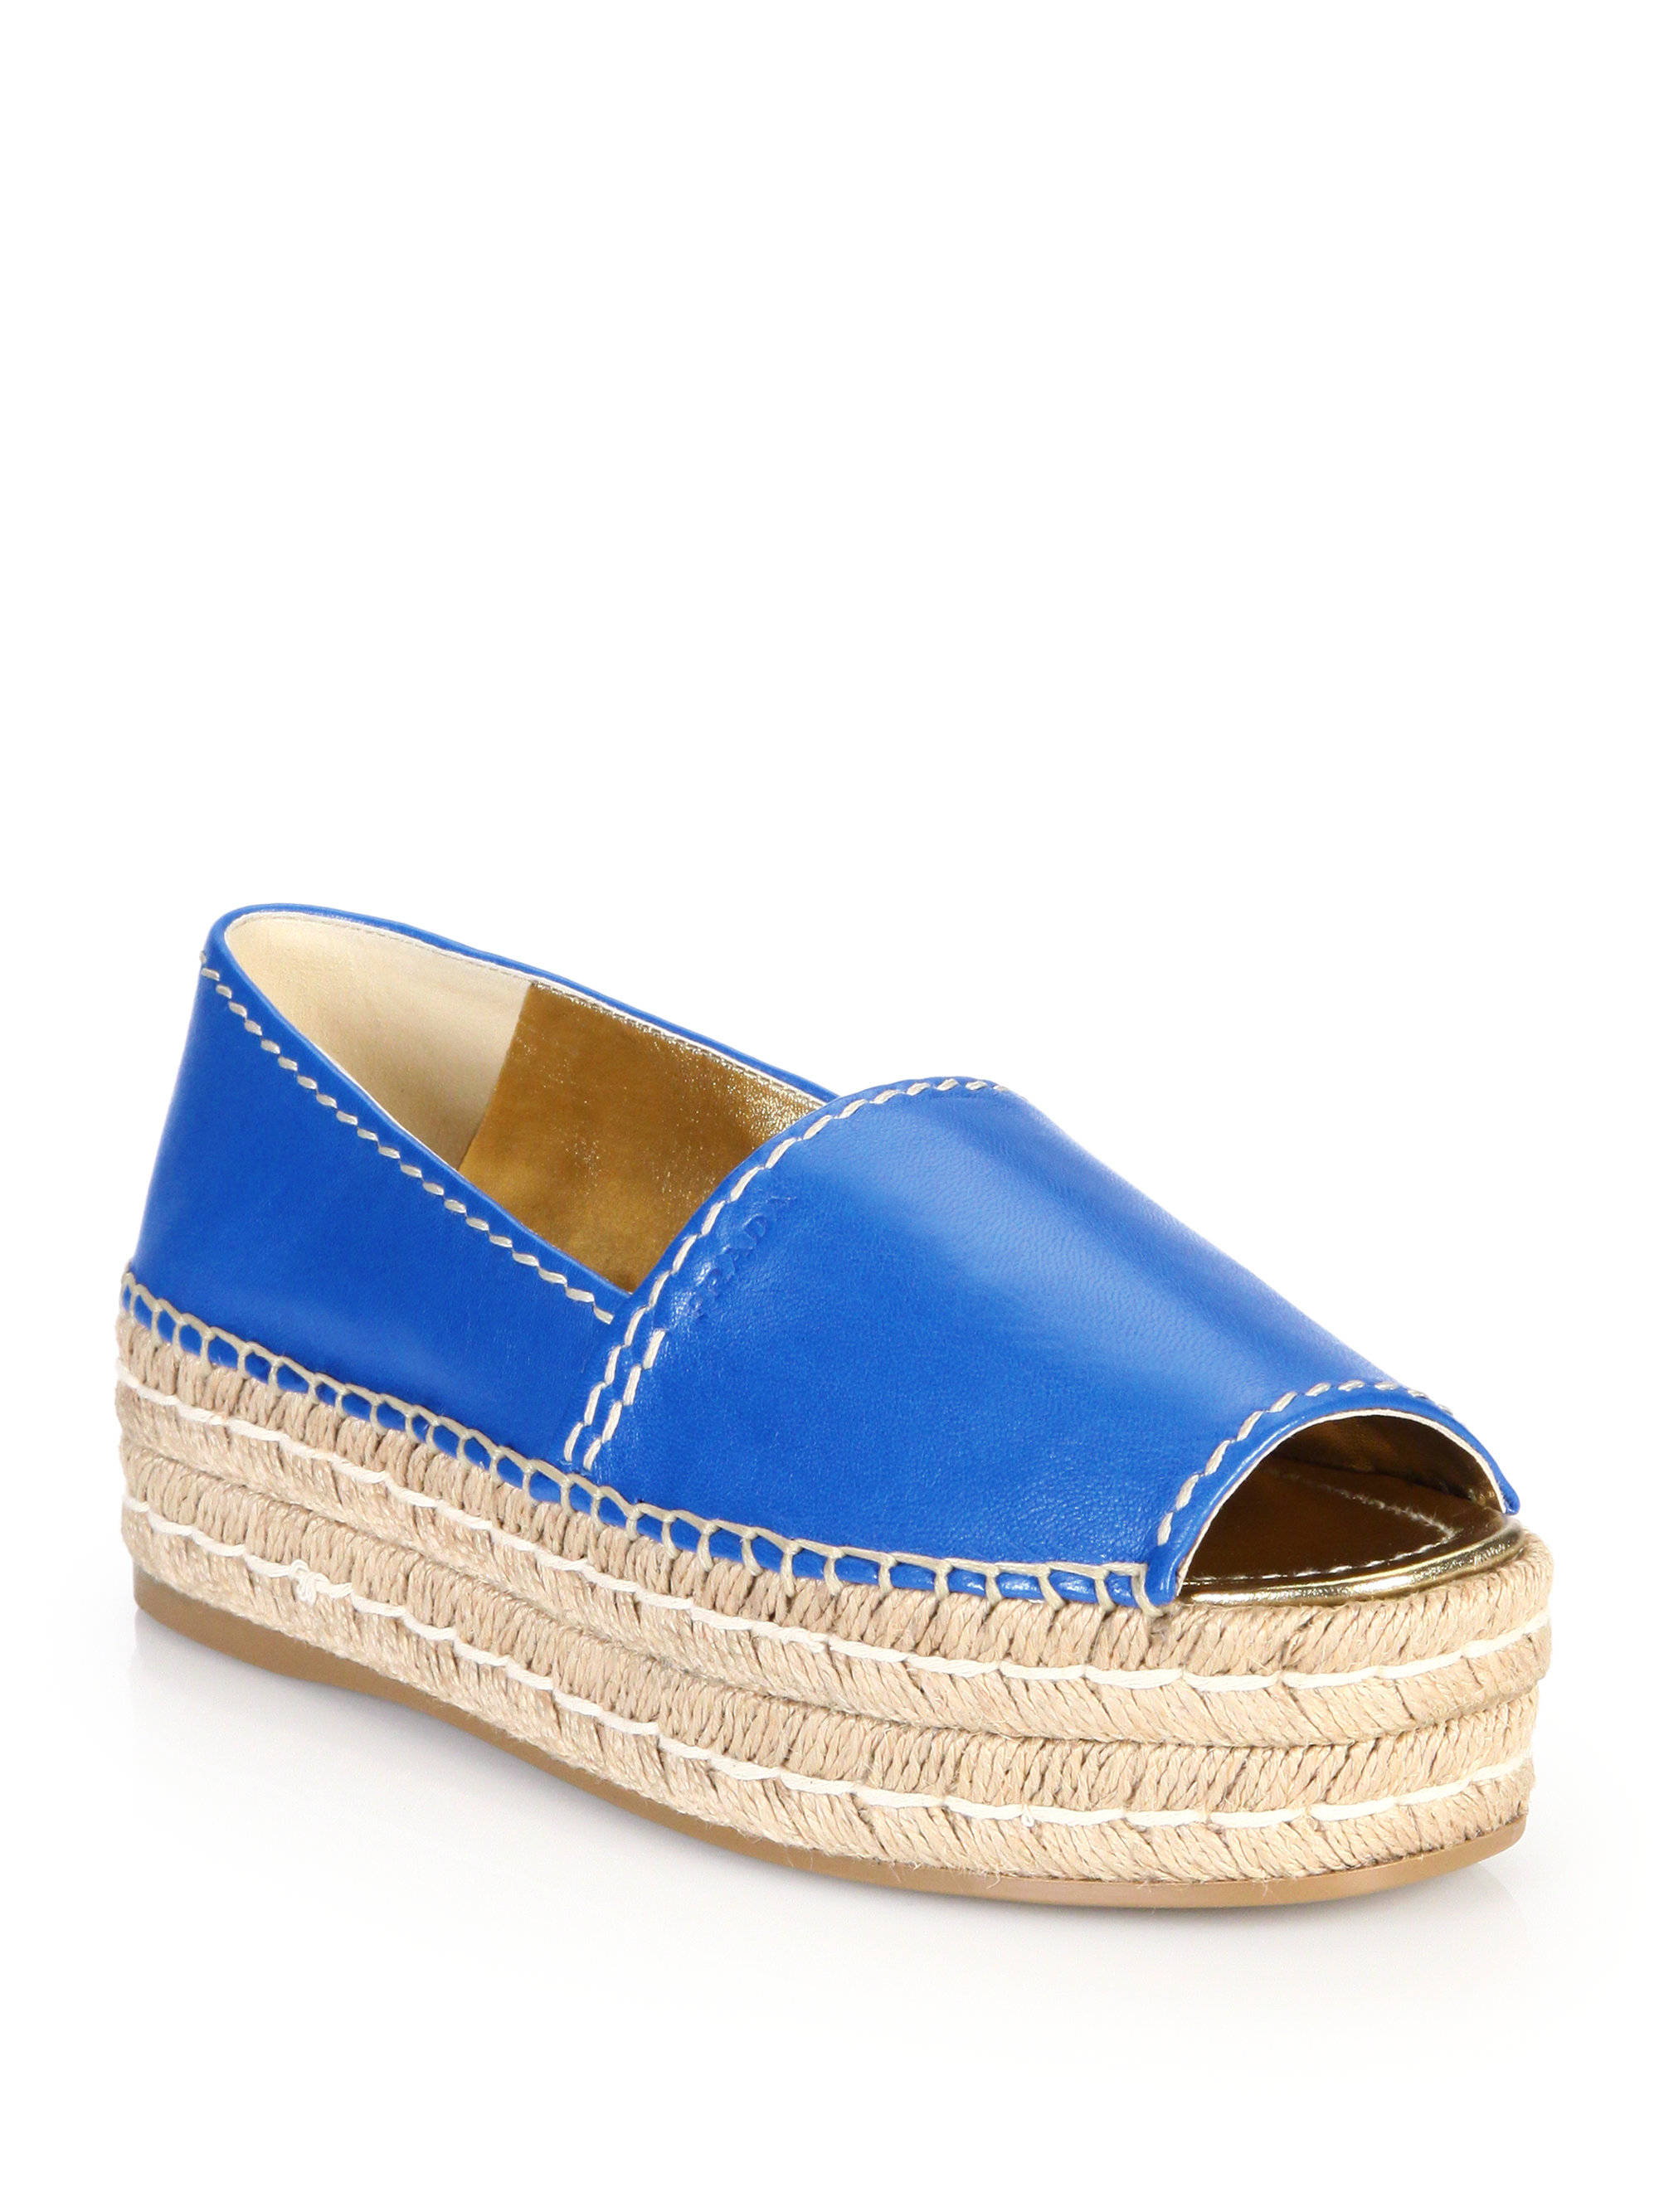 ddbadc2be32b Lyst - Prada Open-toe Leather Platform Espadrilles in Blue